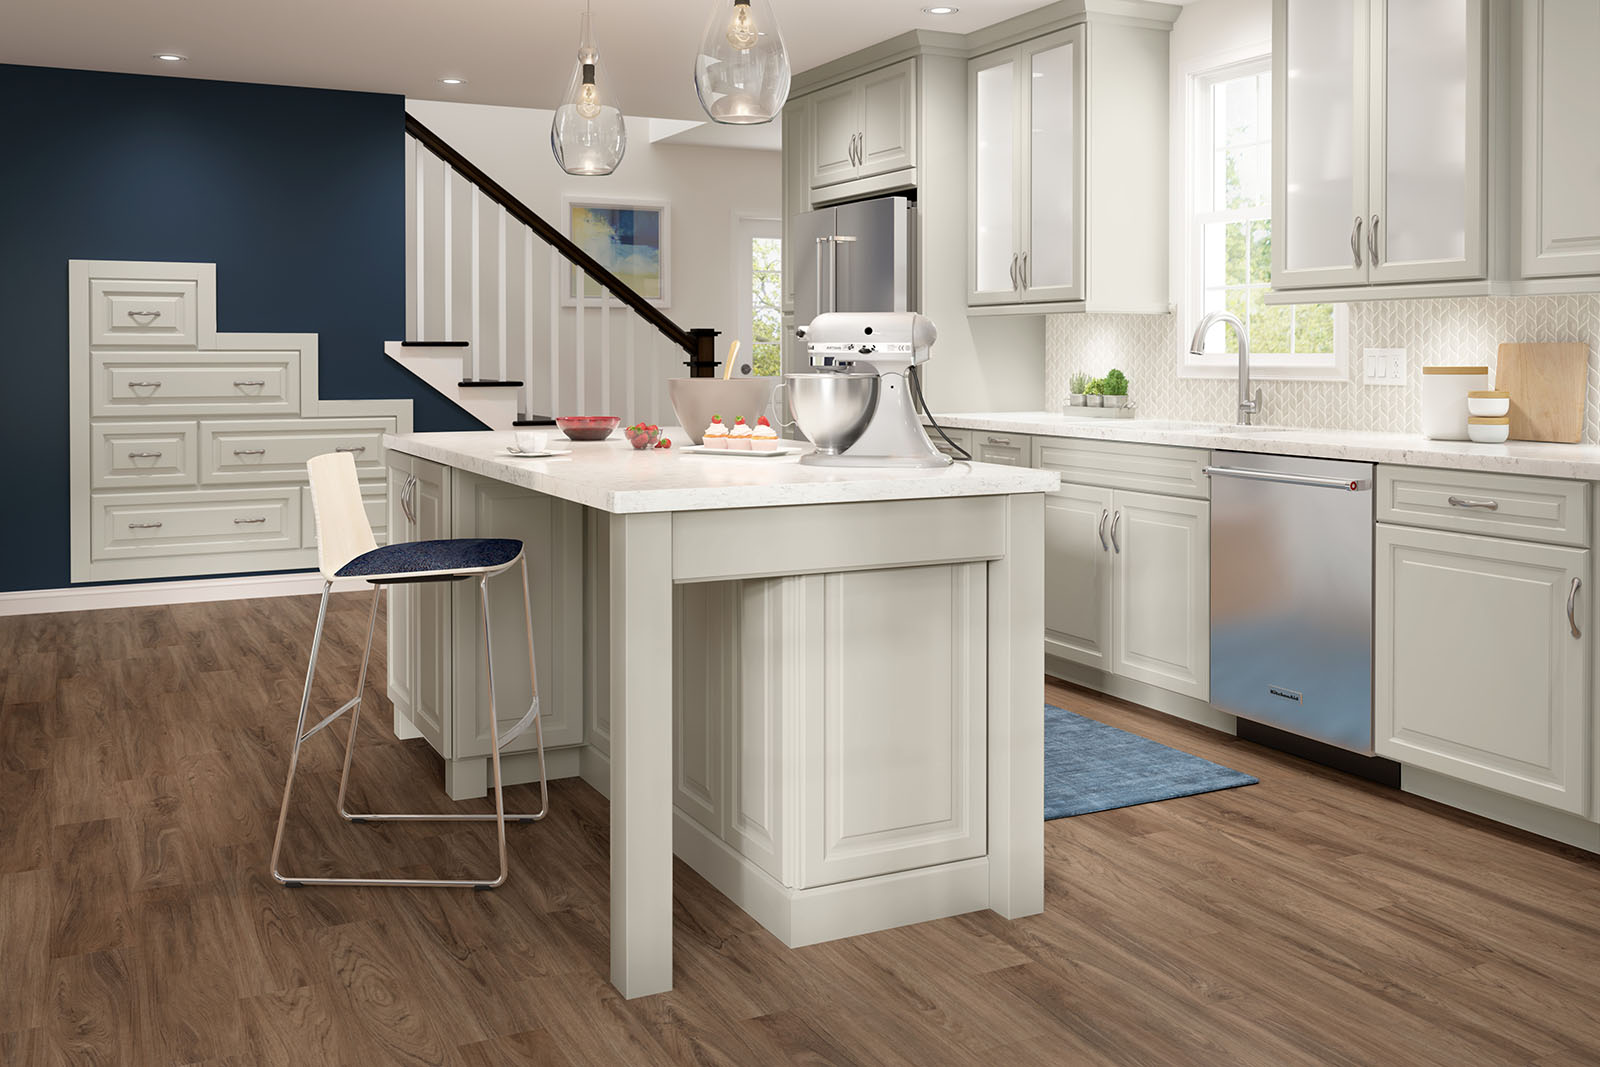 Edgeworth Collection Shenandoah Cabinetry